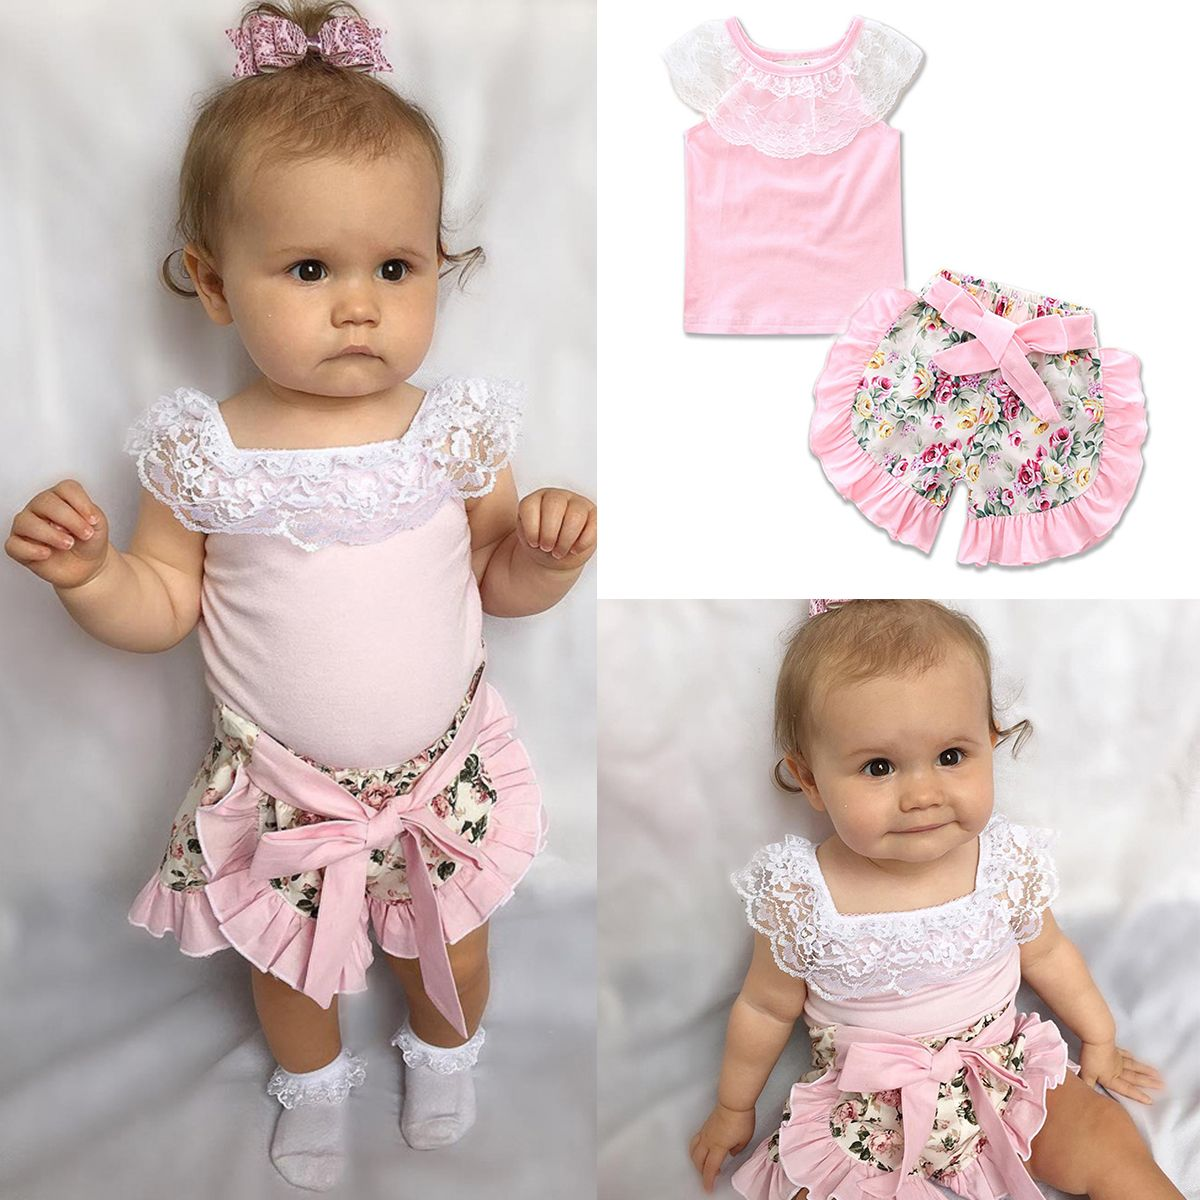 0-3T Toddler Kids Baby Girls Top Shorts Headband Clothing Suits Cute Floral Print Shirts Bow Lace Pants Outfits Sets